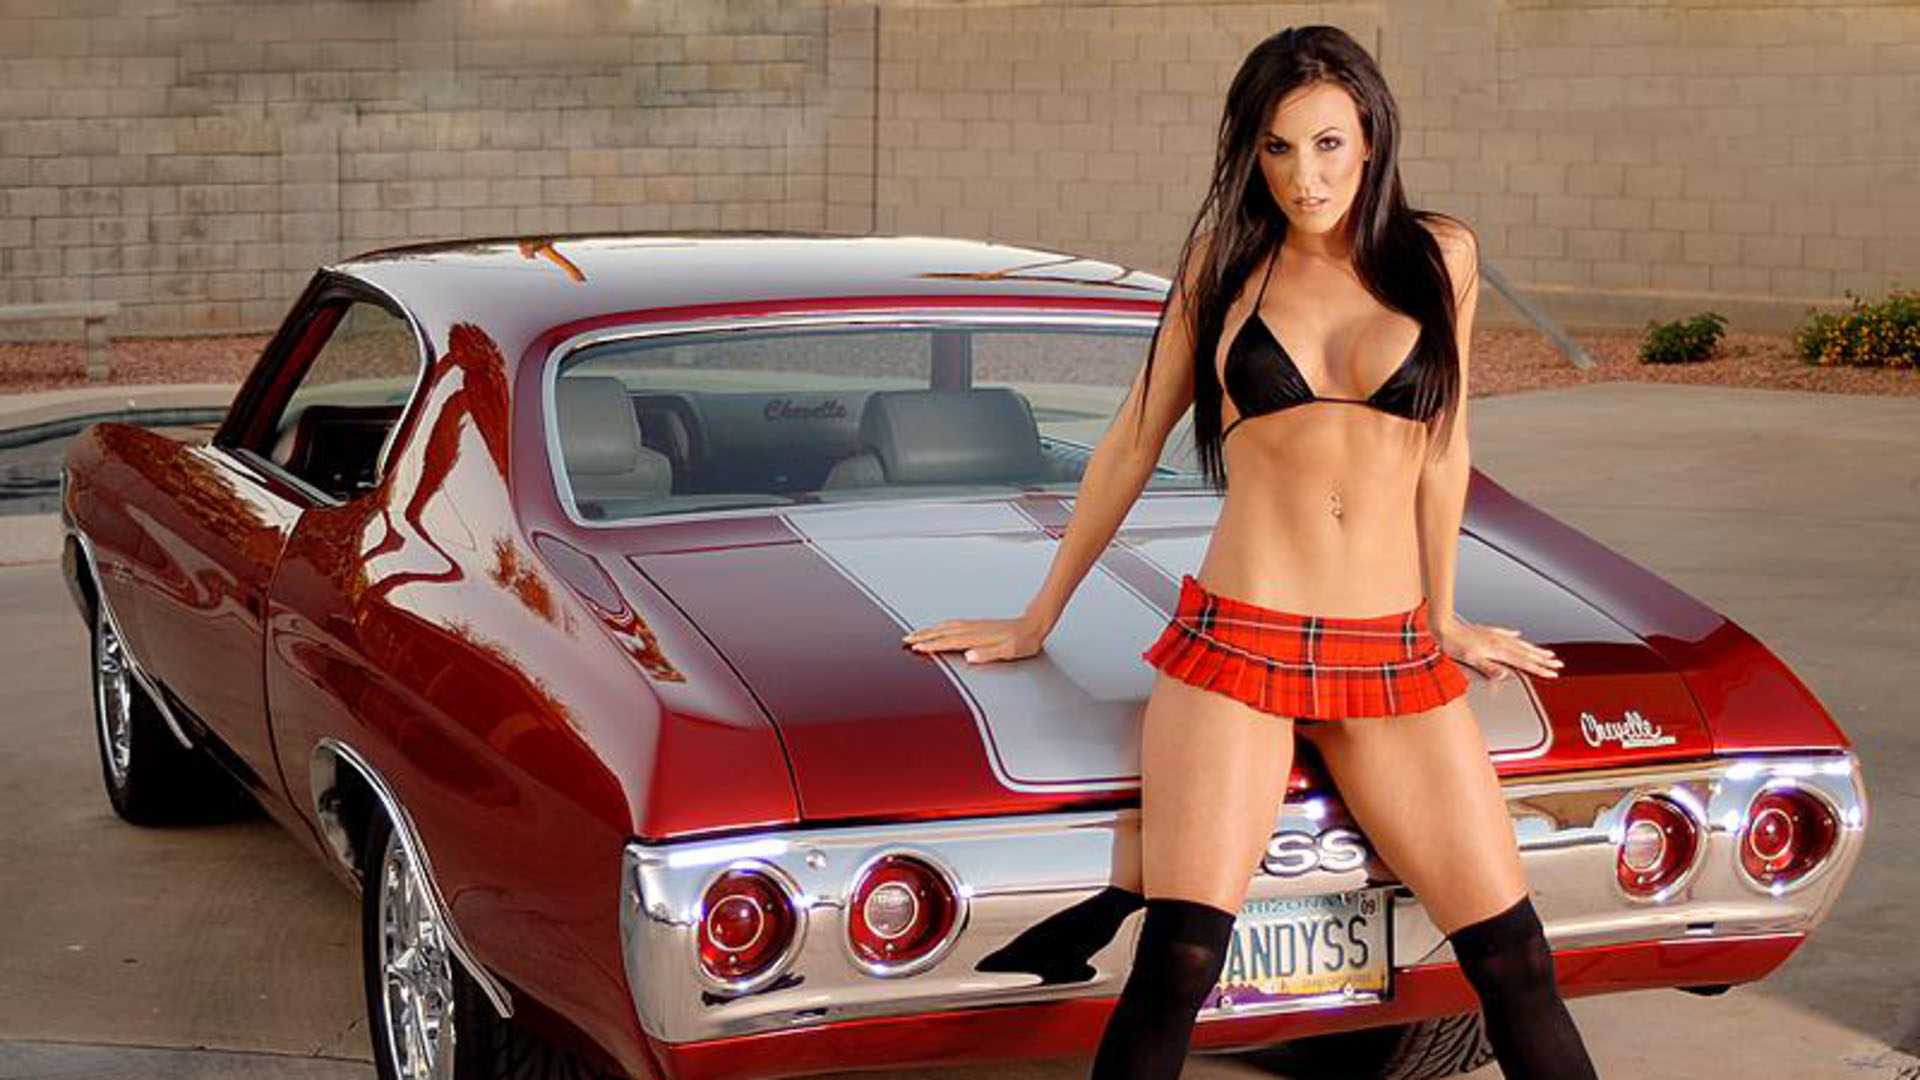 Girl and cool cars all nude